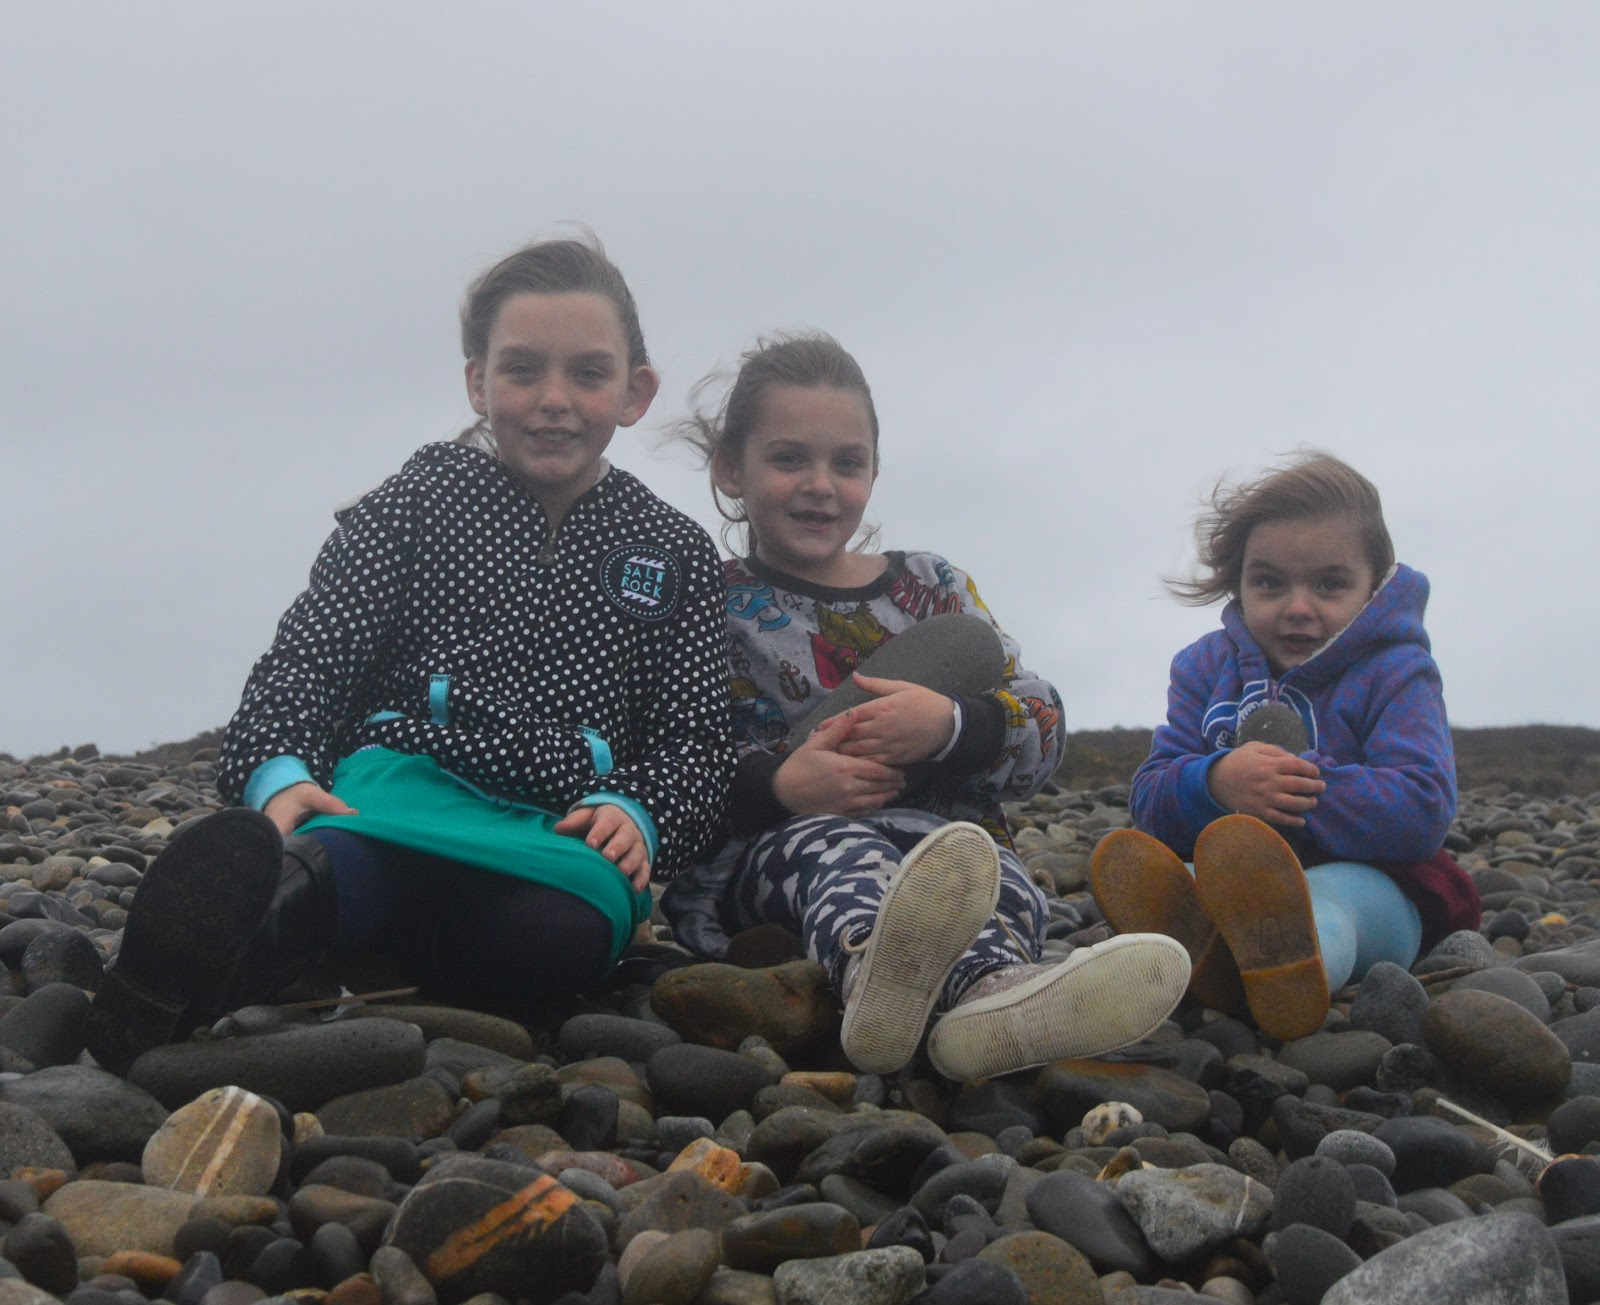 Outdoors family on beach in Winter #saltrocksoul